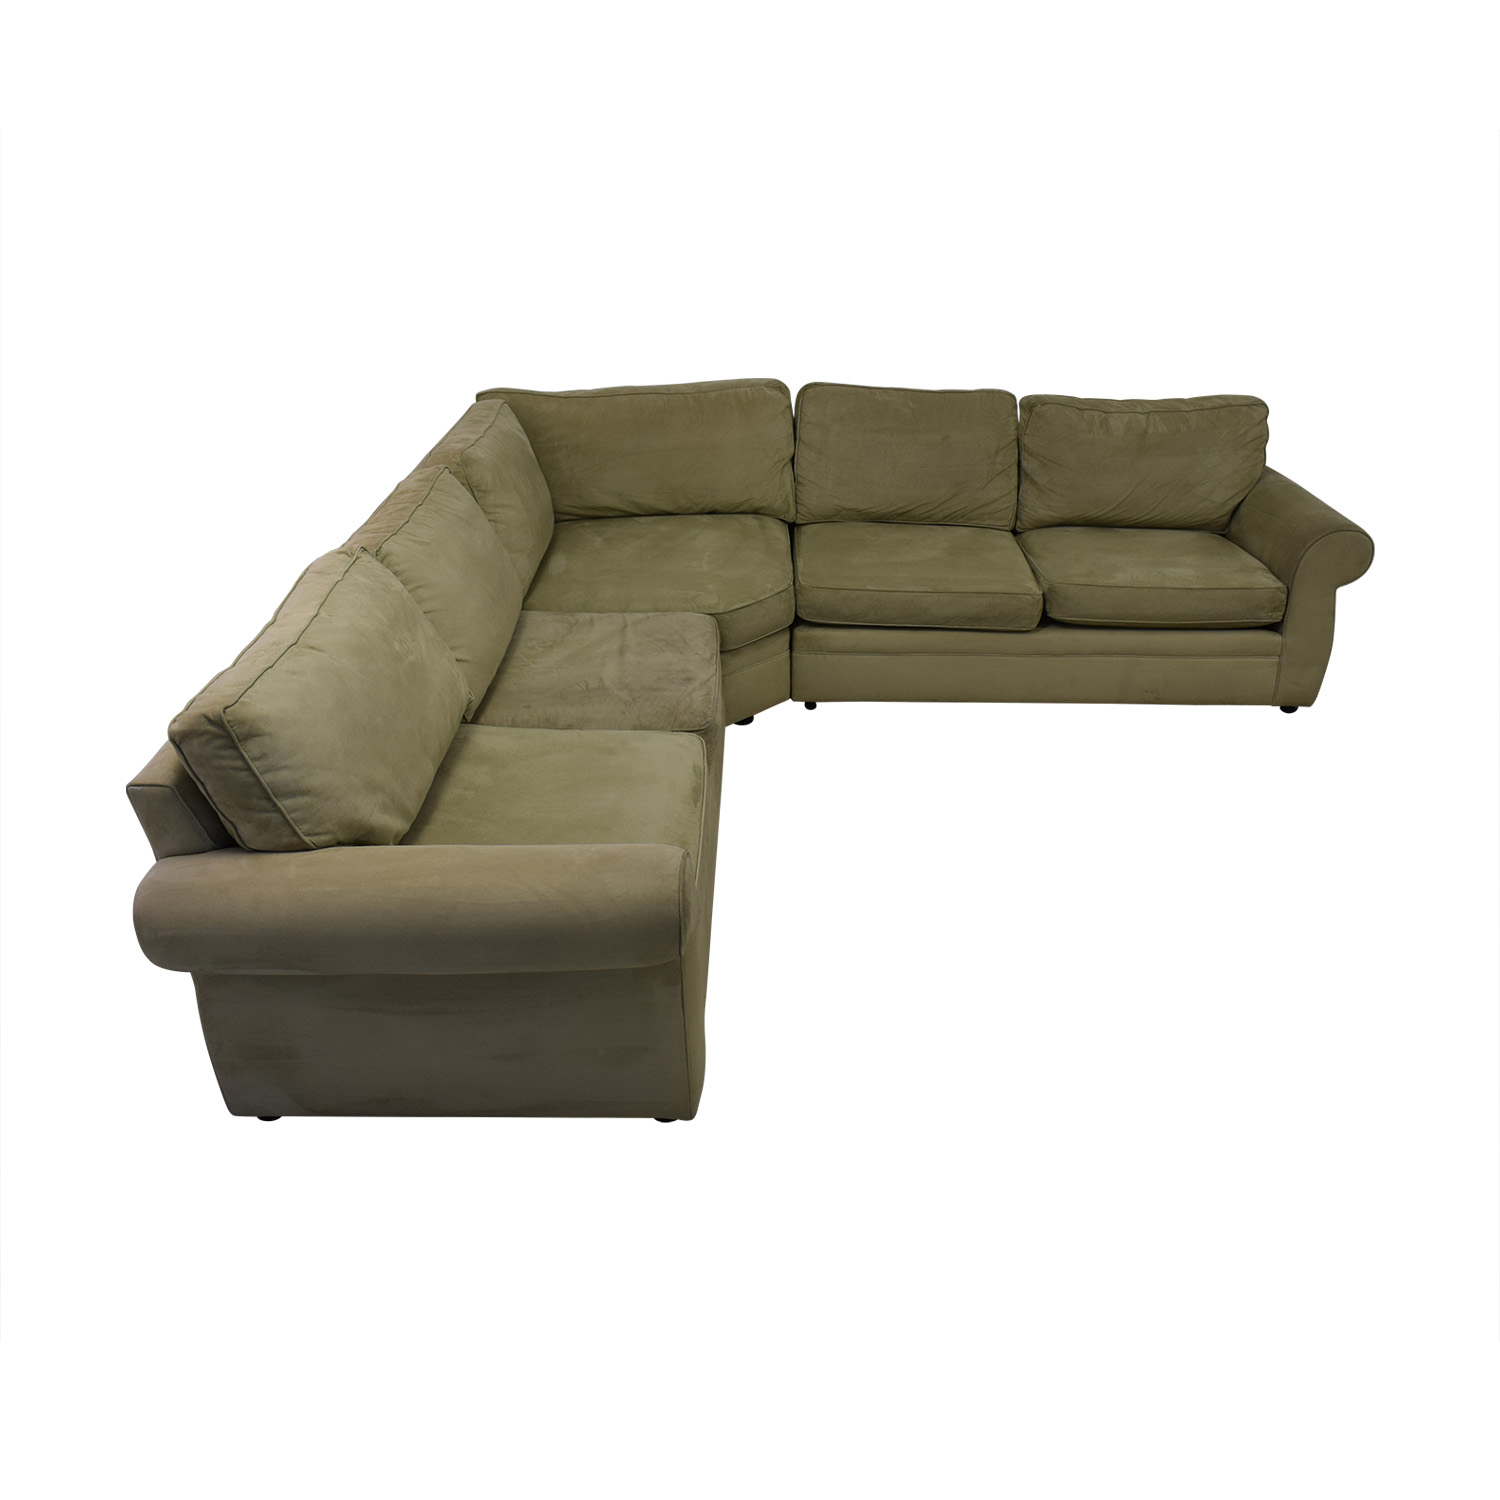 shop Pottery Barn Pottery Barn Pearce Beige L-Shaped Sectional online